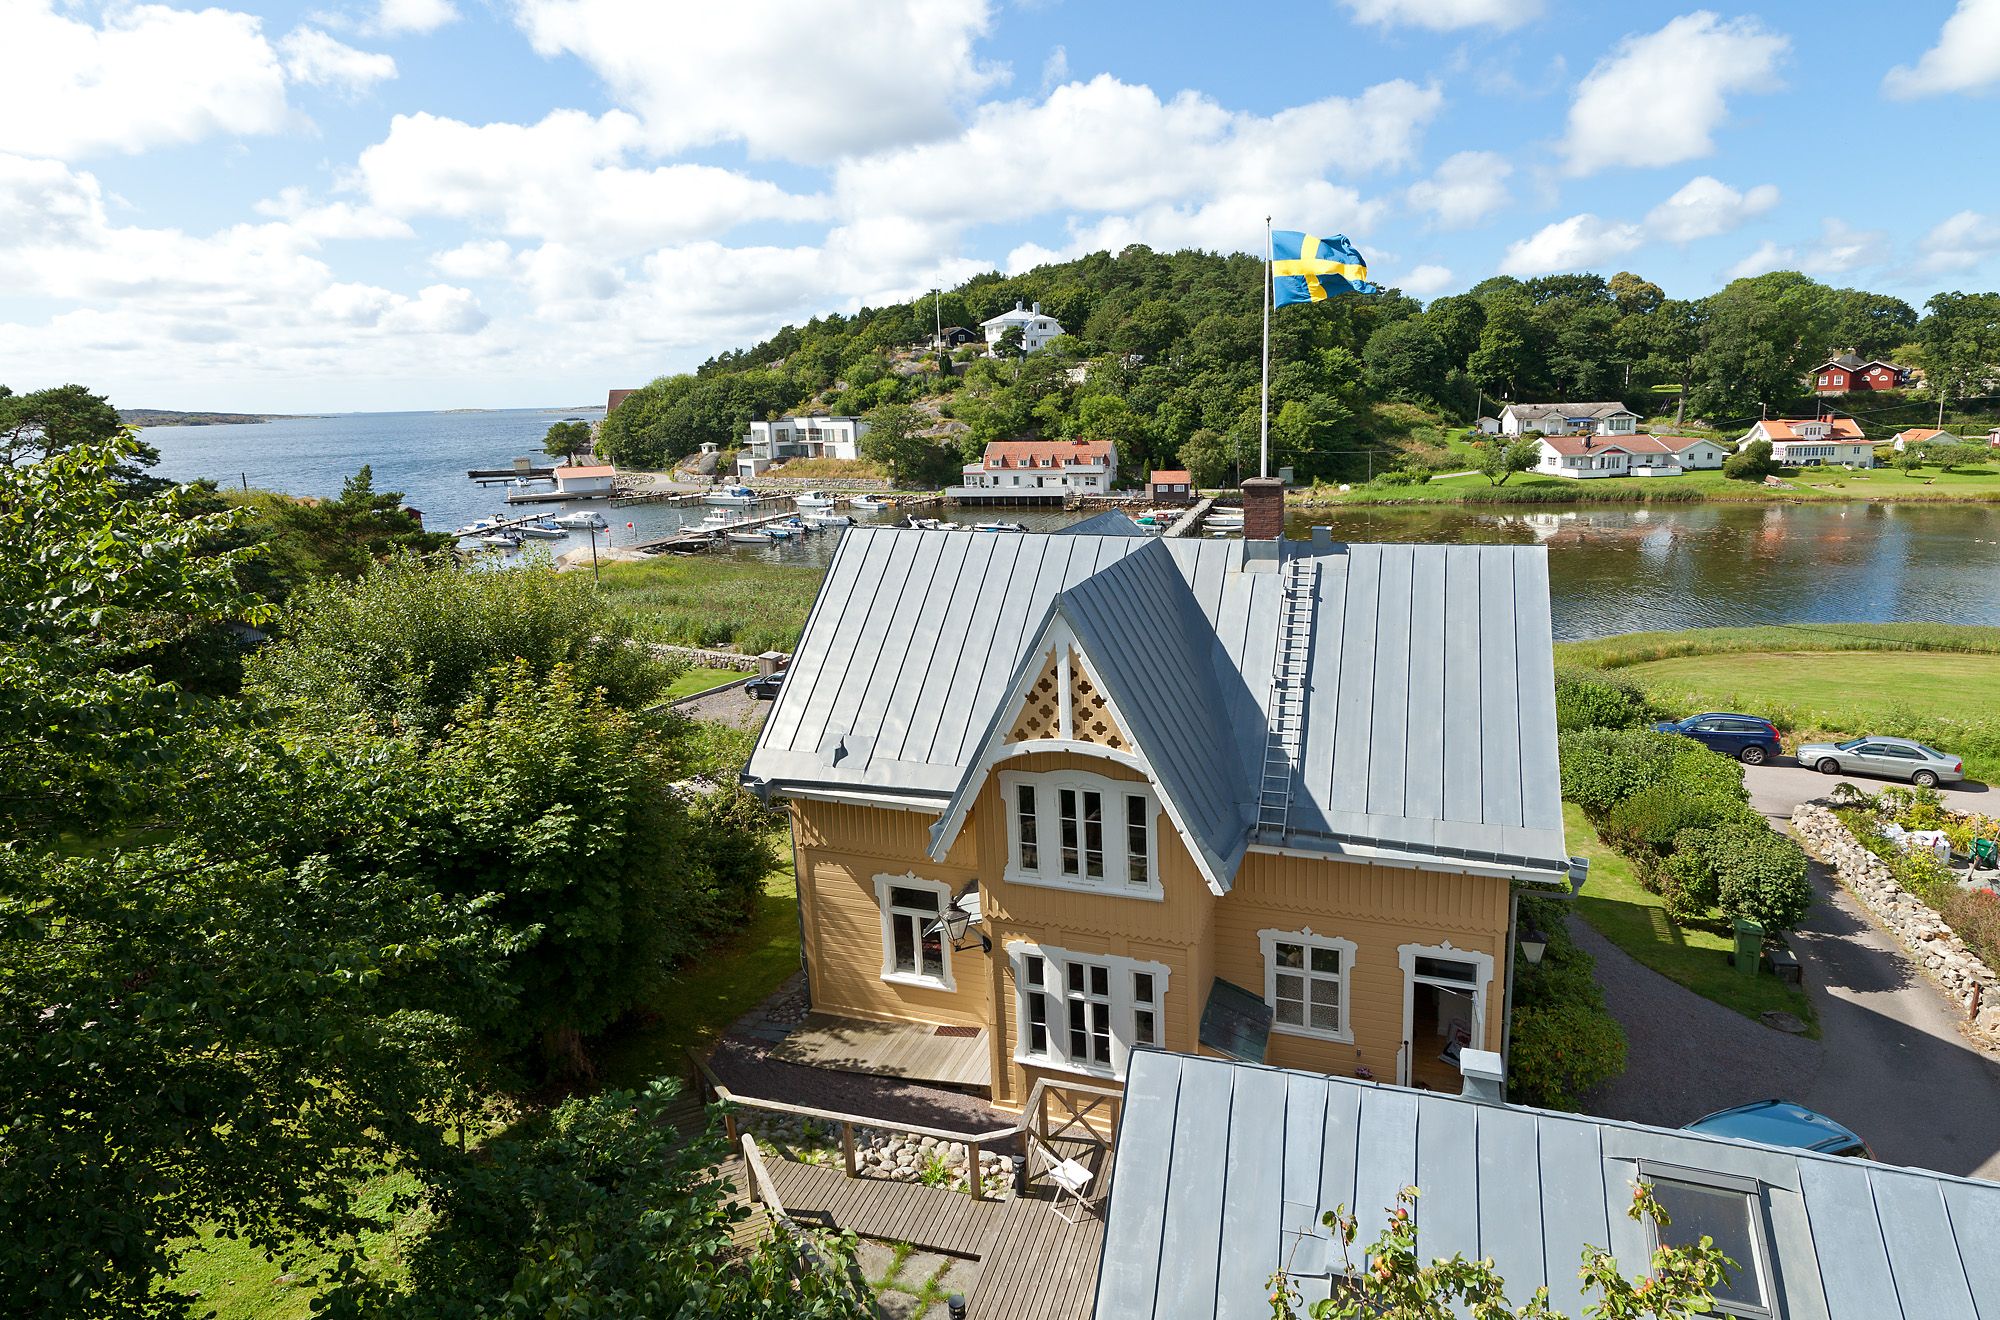 Single Family Home for Sale at Classic waterfront villa Other Vastra Gotaland, Vastra Gotaland Sweden